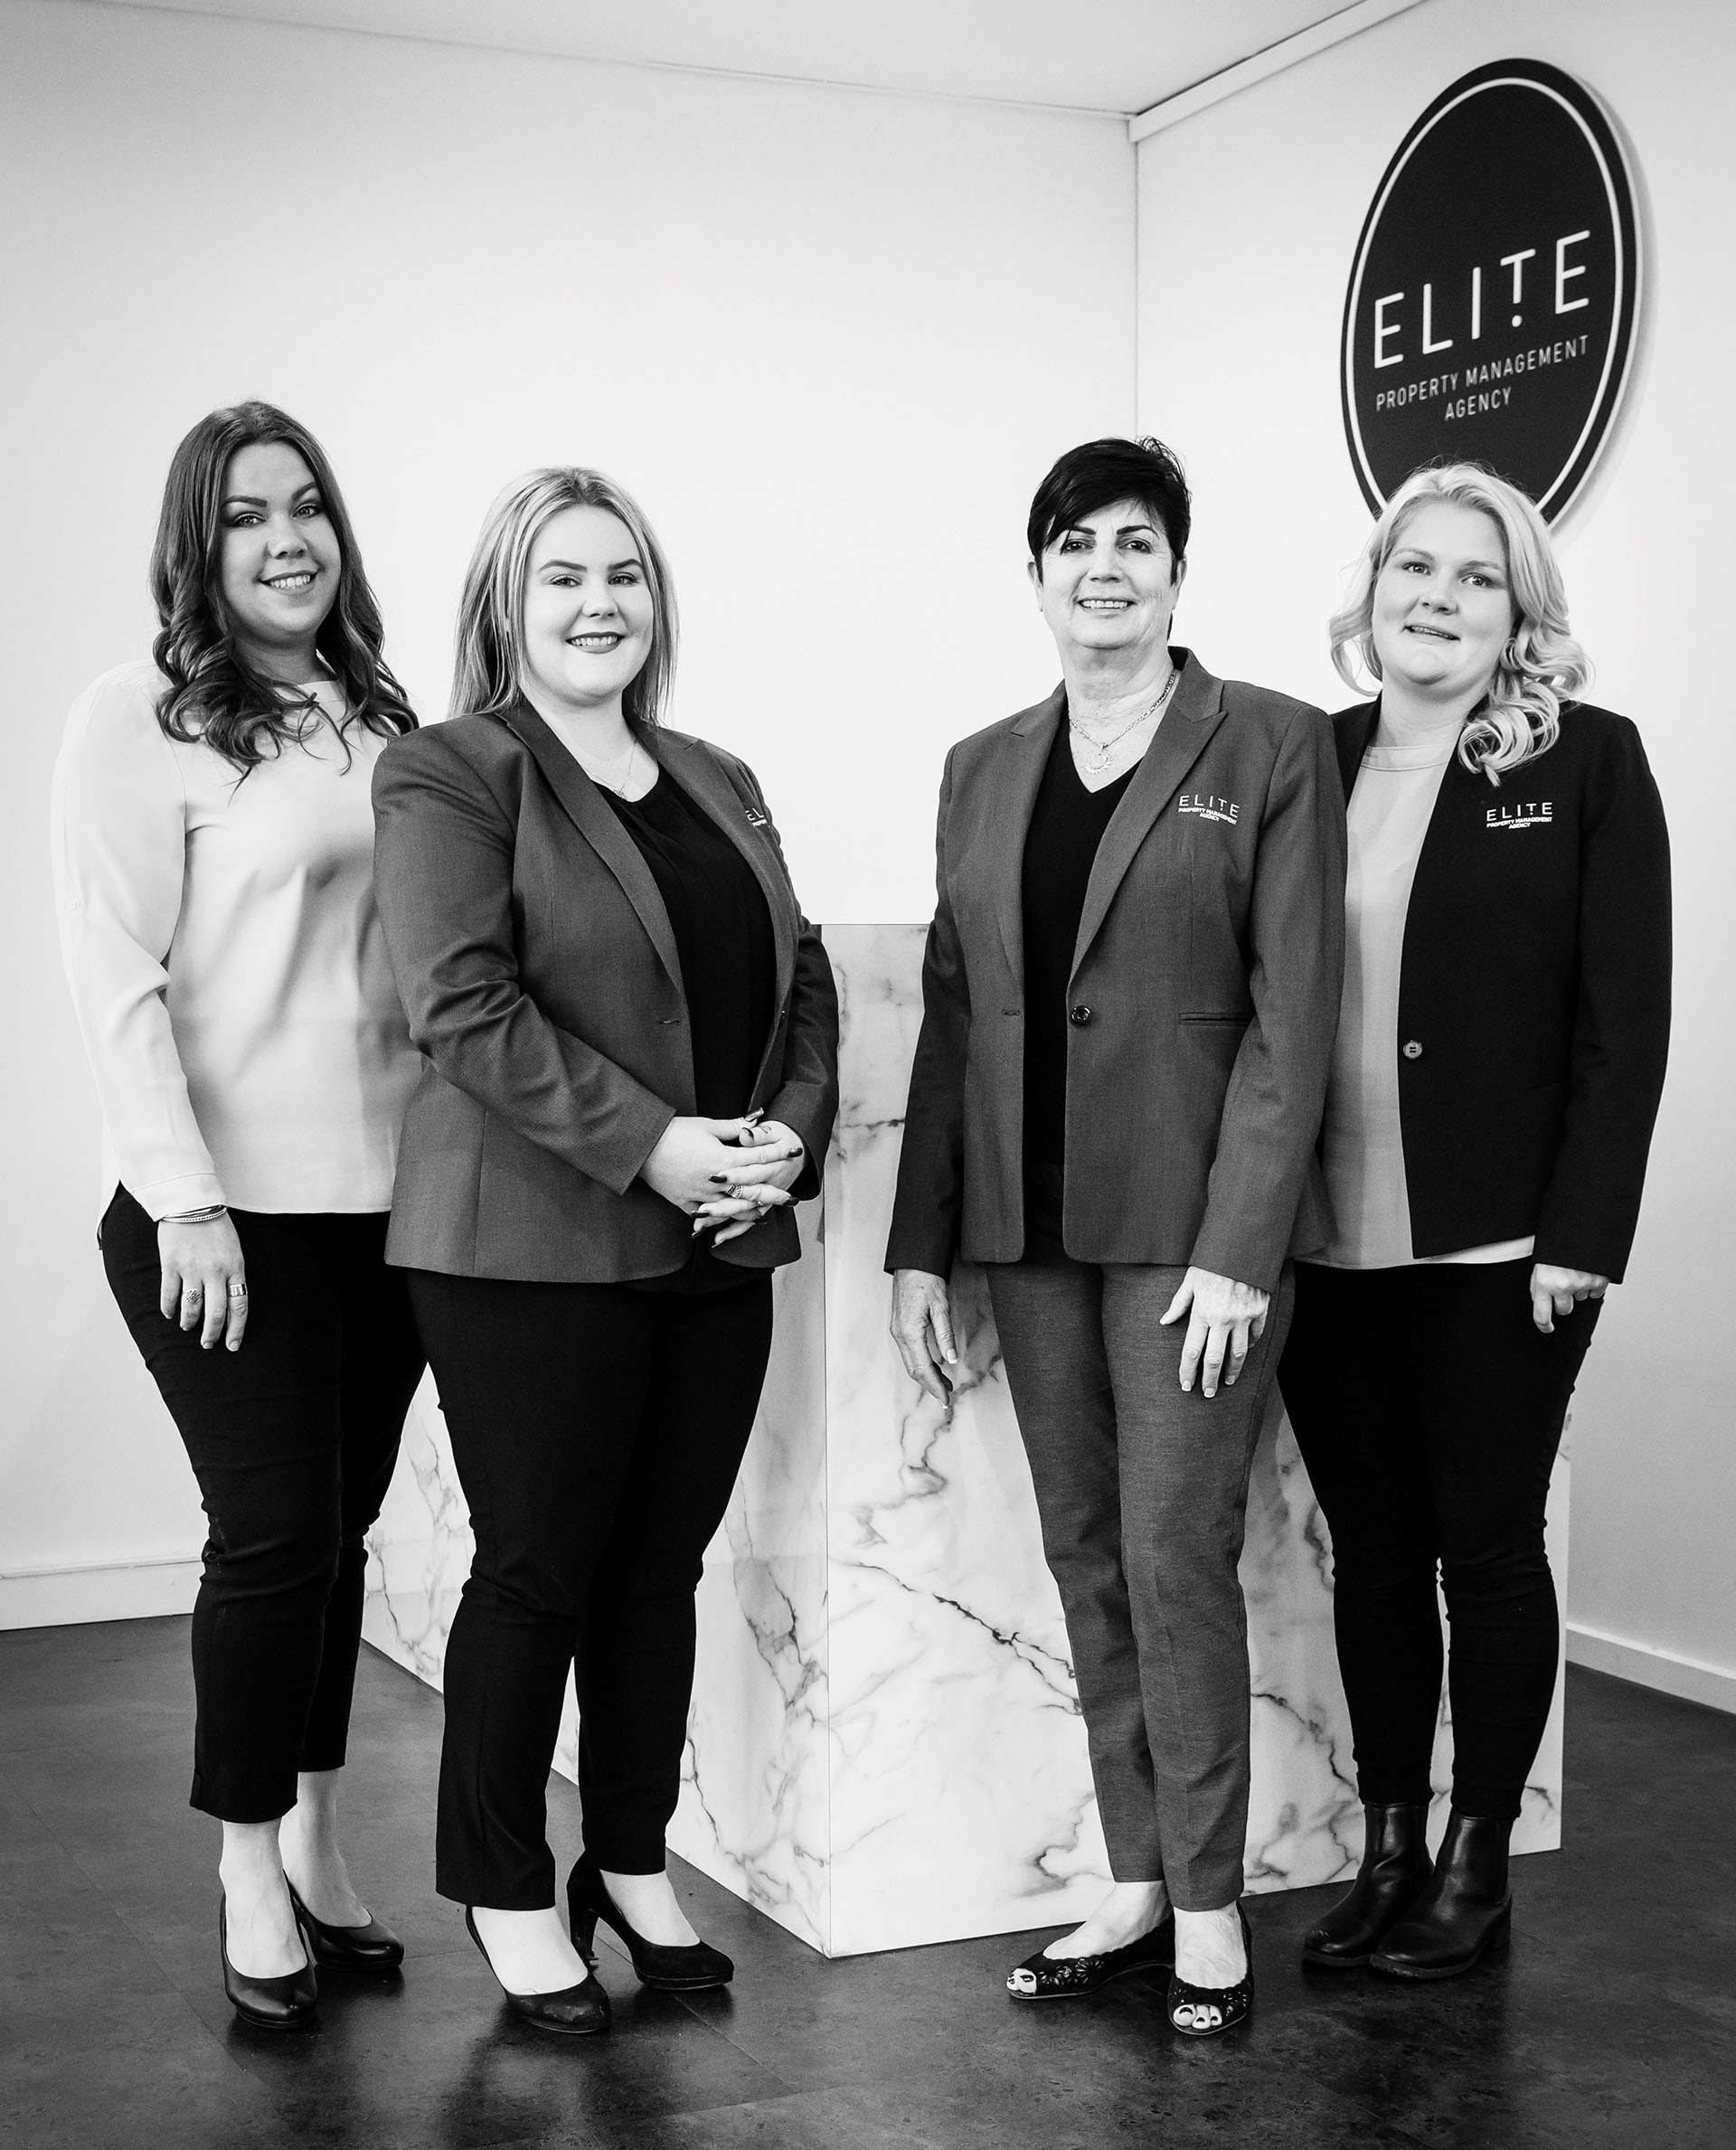 Elite Property Management Agency